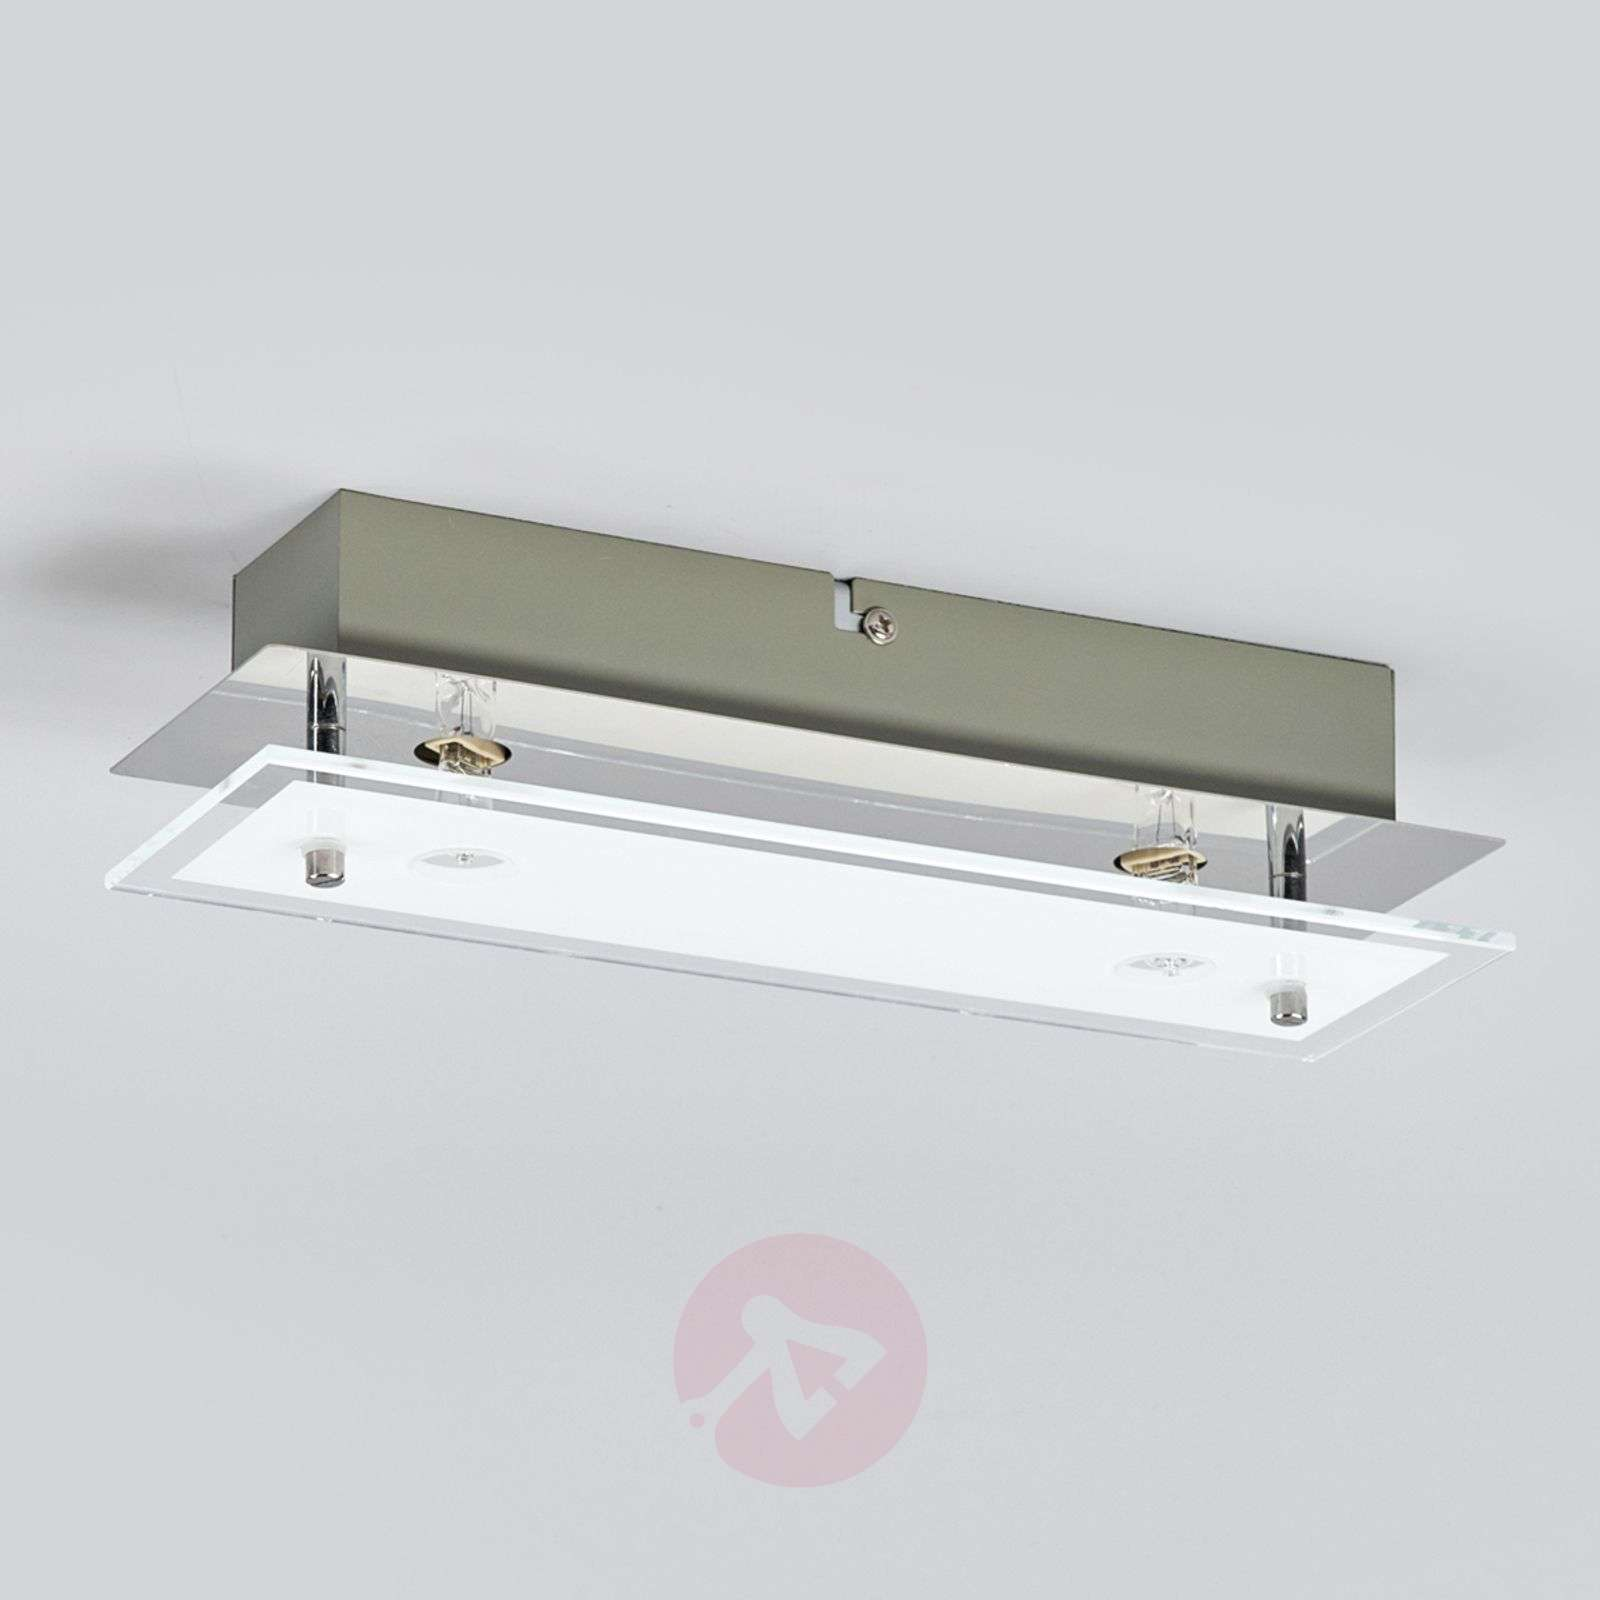 Levy glass LED ceiling lamp with G9 lamps-9994087-02